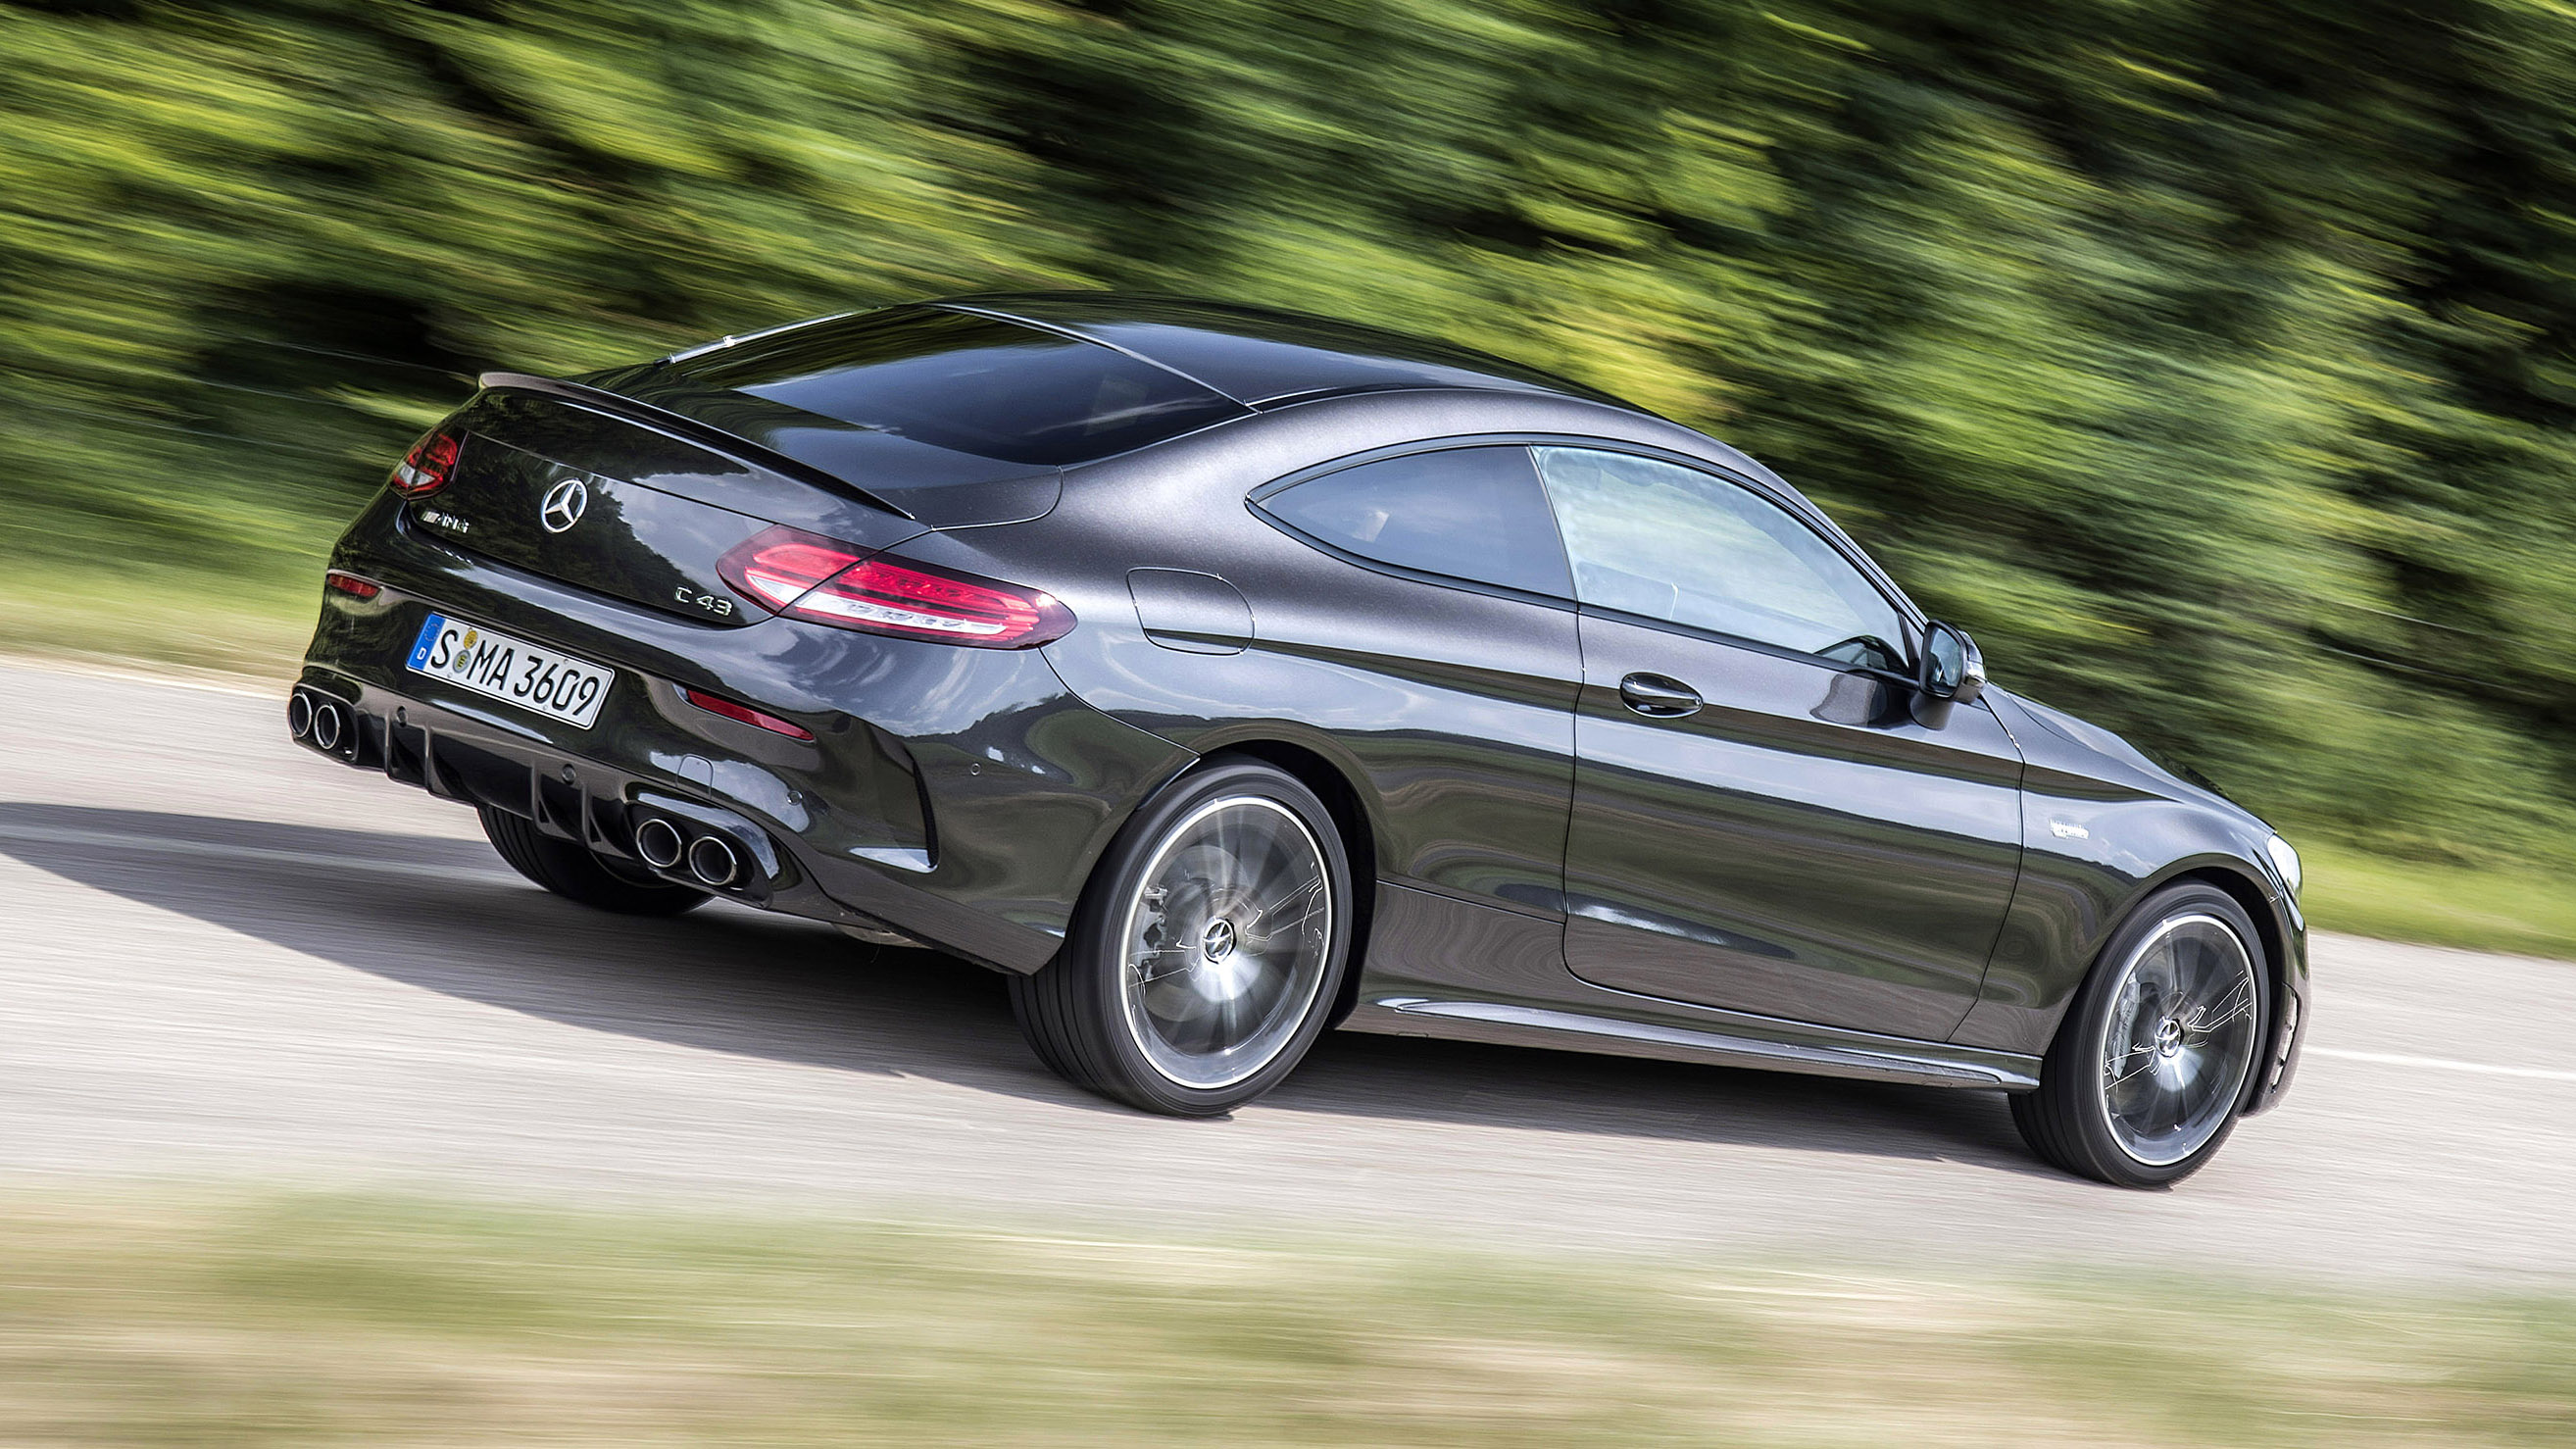 Mercedes-AMG C43 review: new twin-turbo C-Class driven | Top